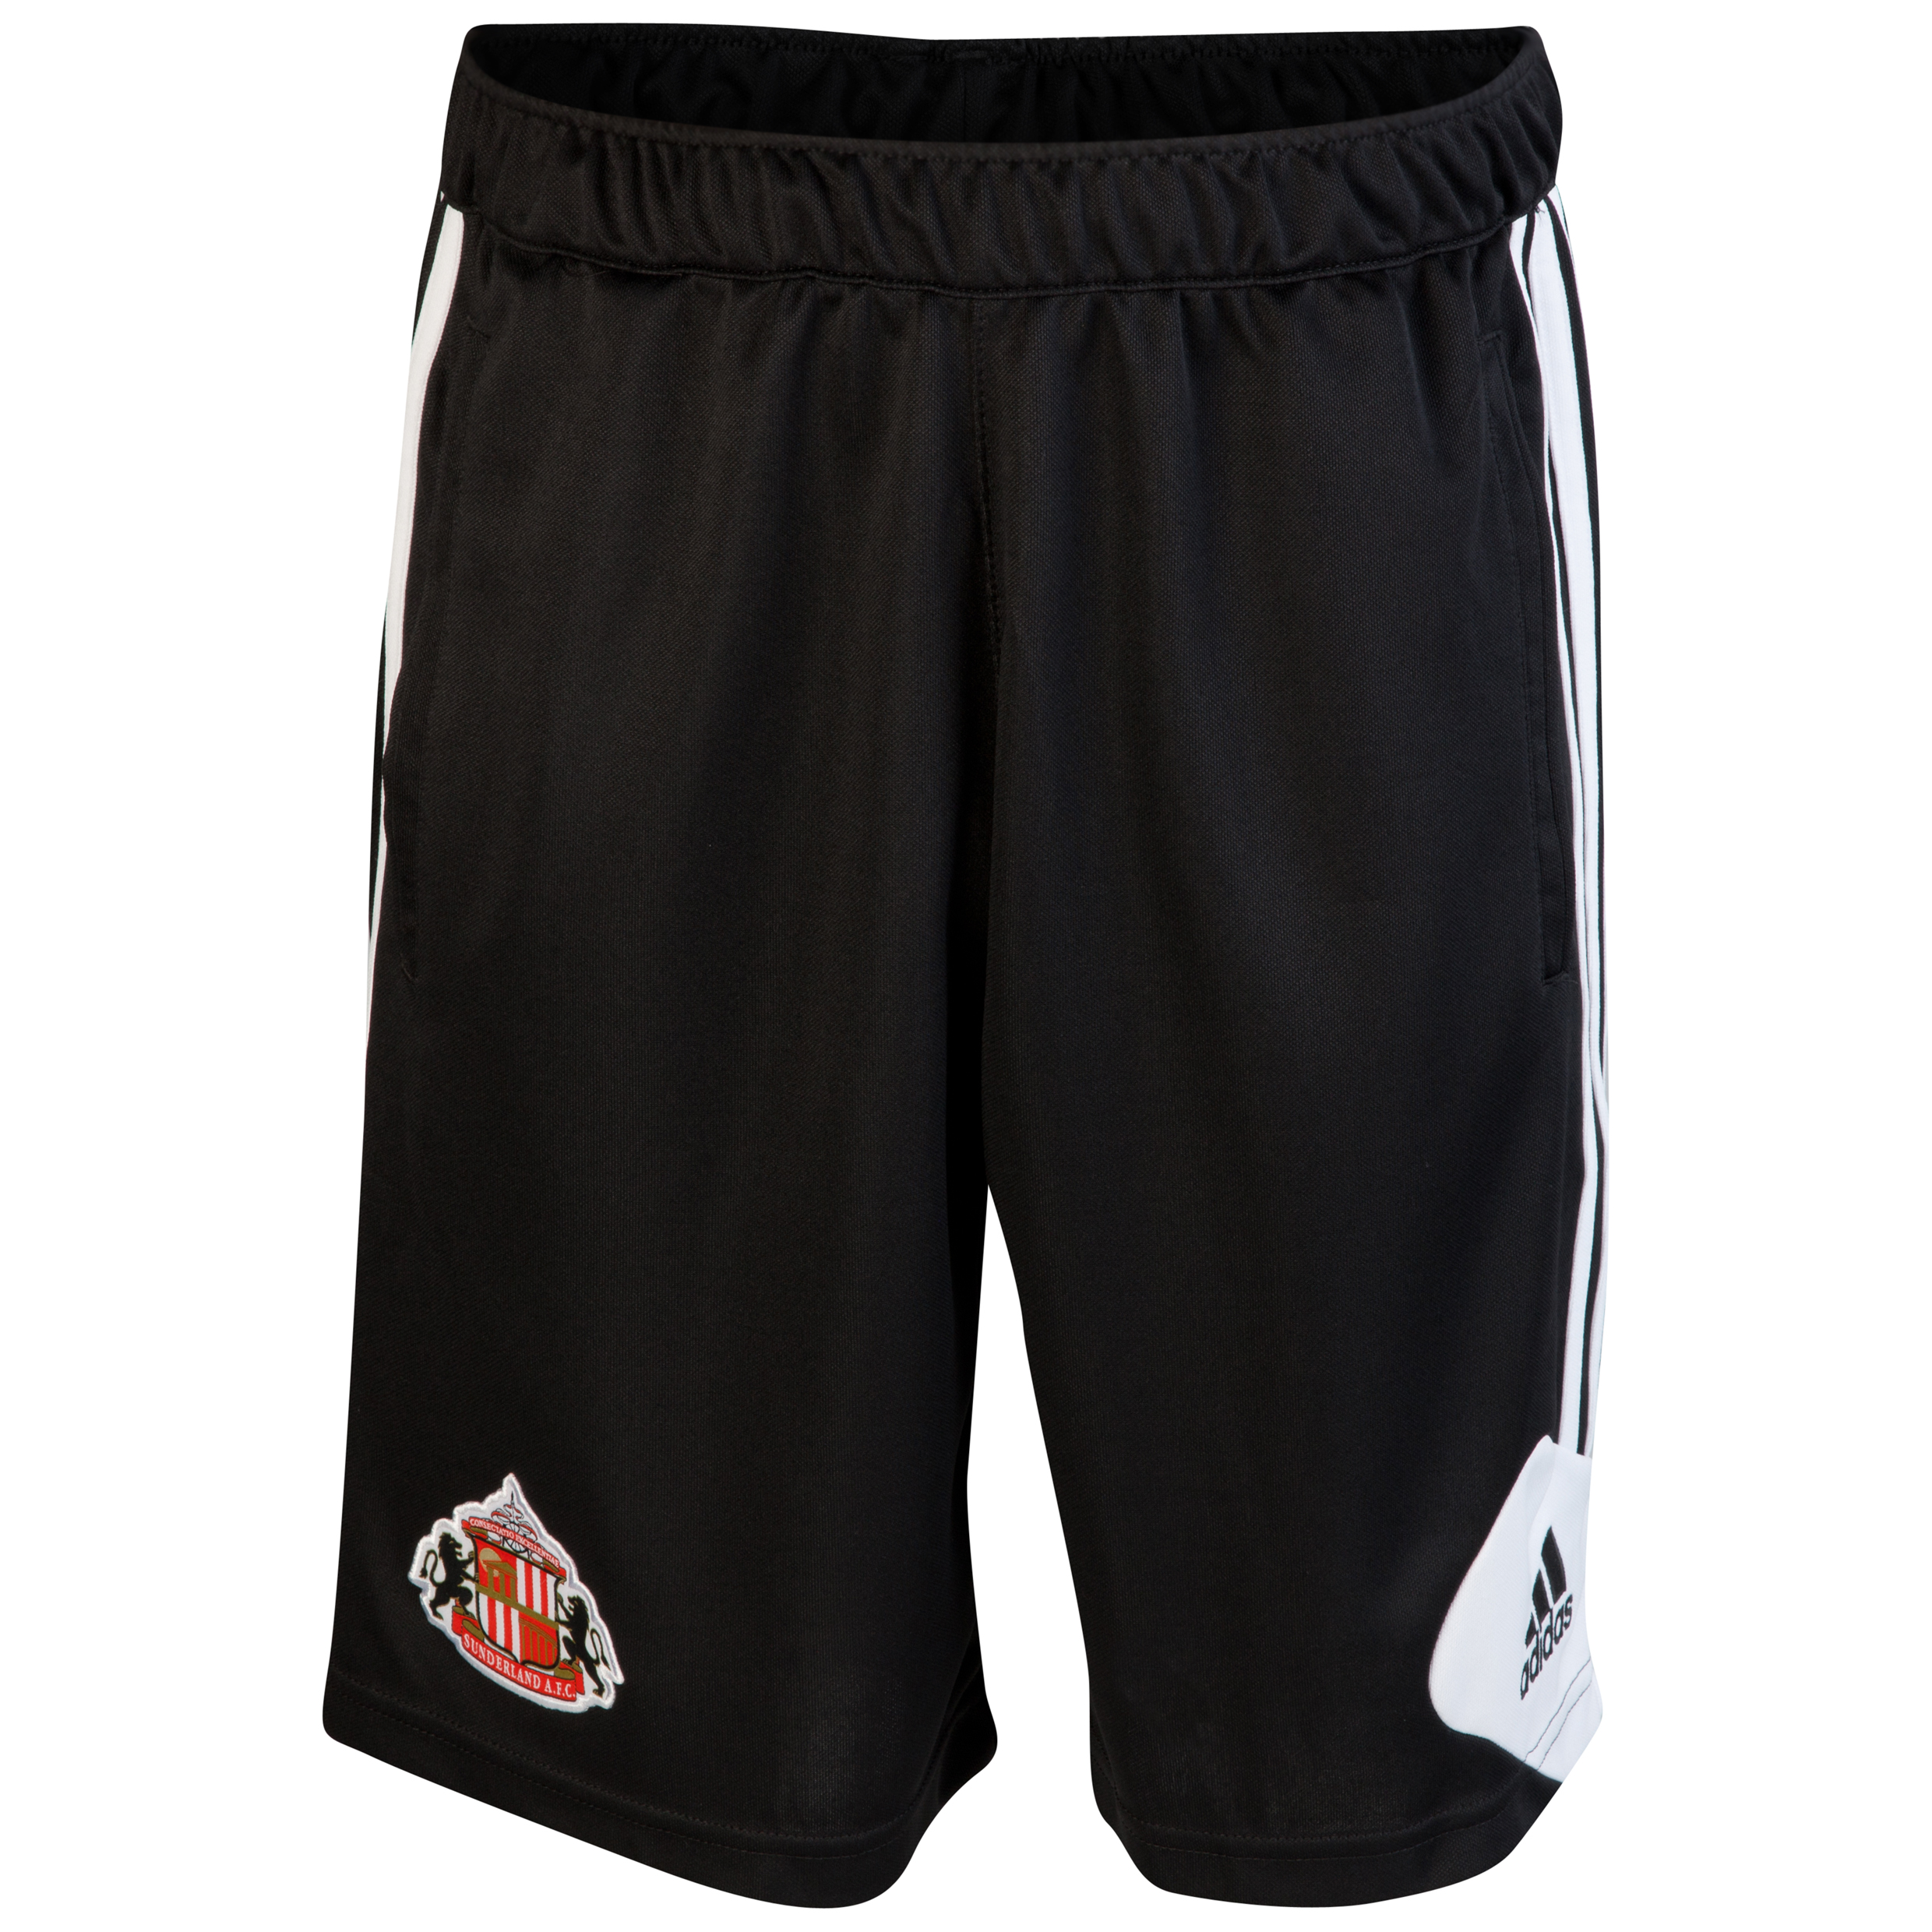 Sunderland Condivo Training Short - Black/White